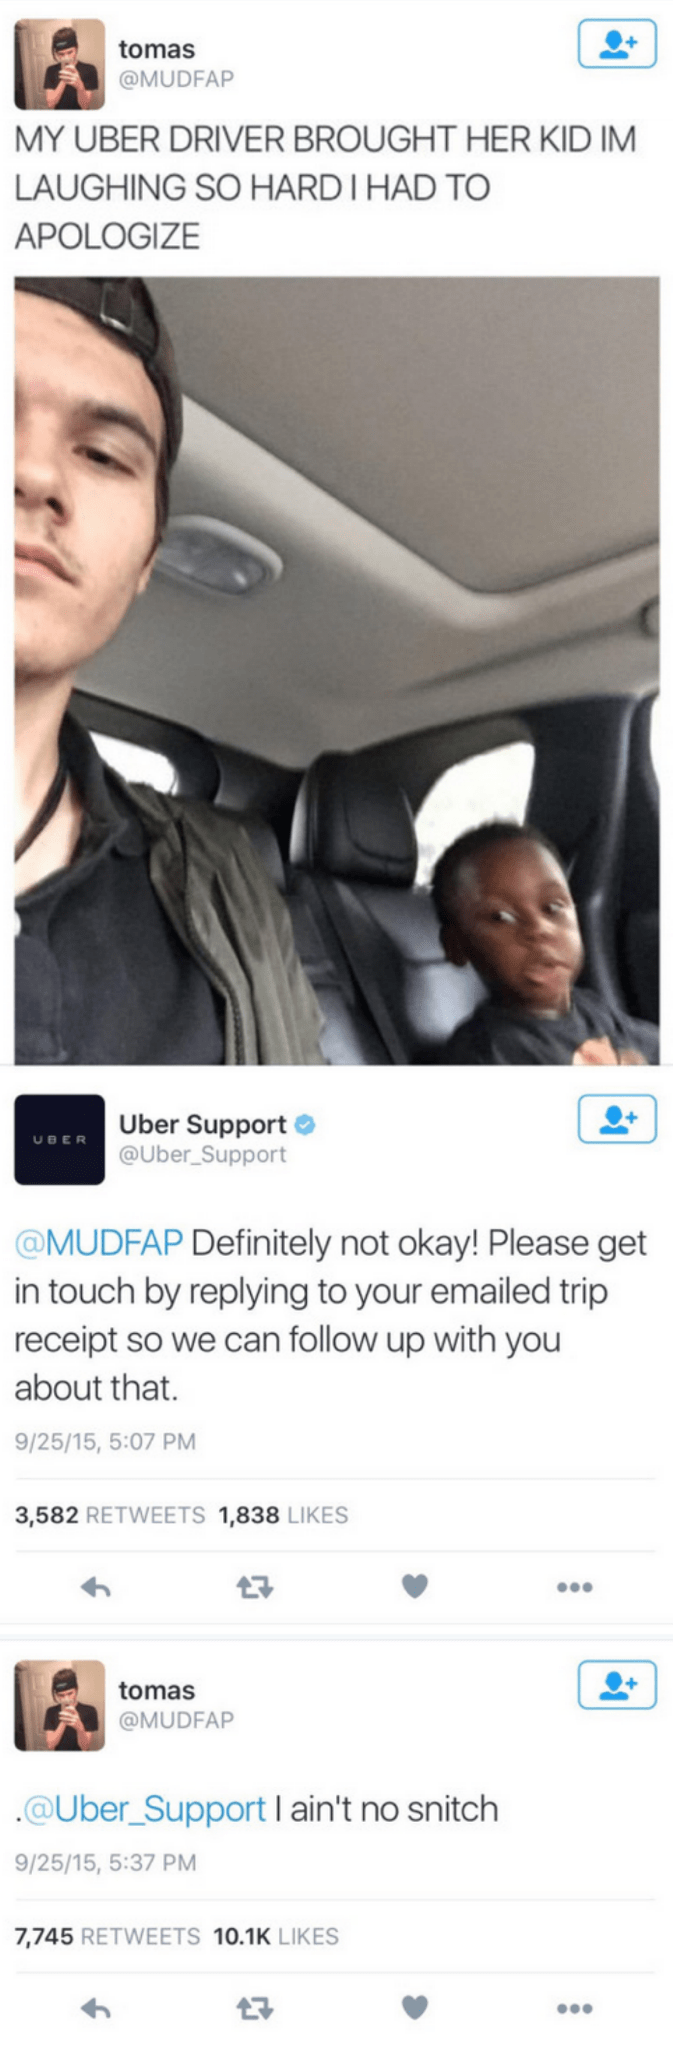 meme - Product - tomas @MUDFAP MY UBER DRIVER BROUGHT HER KID IM LAUGHING SO HARD I HAD TO APOLOGIZE Uber Support @Uber Support UBER @MUDFAP Definitely not okay! Please get in touch by replying to your emailed trip receipt so we can follow up with you about that. 9/25/15, 5:07 PM 3,582 RETWEETS 1,838 LIKES tomas @MUDFAP @Uber_Support I ain't no snitch 9/25/15, 5:37 PM 7,745 RETWEETS 10.1K LIKES